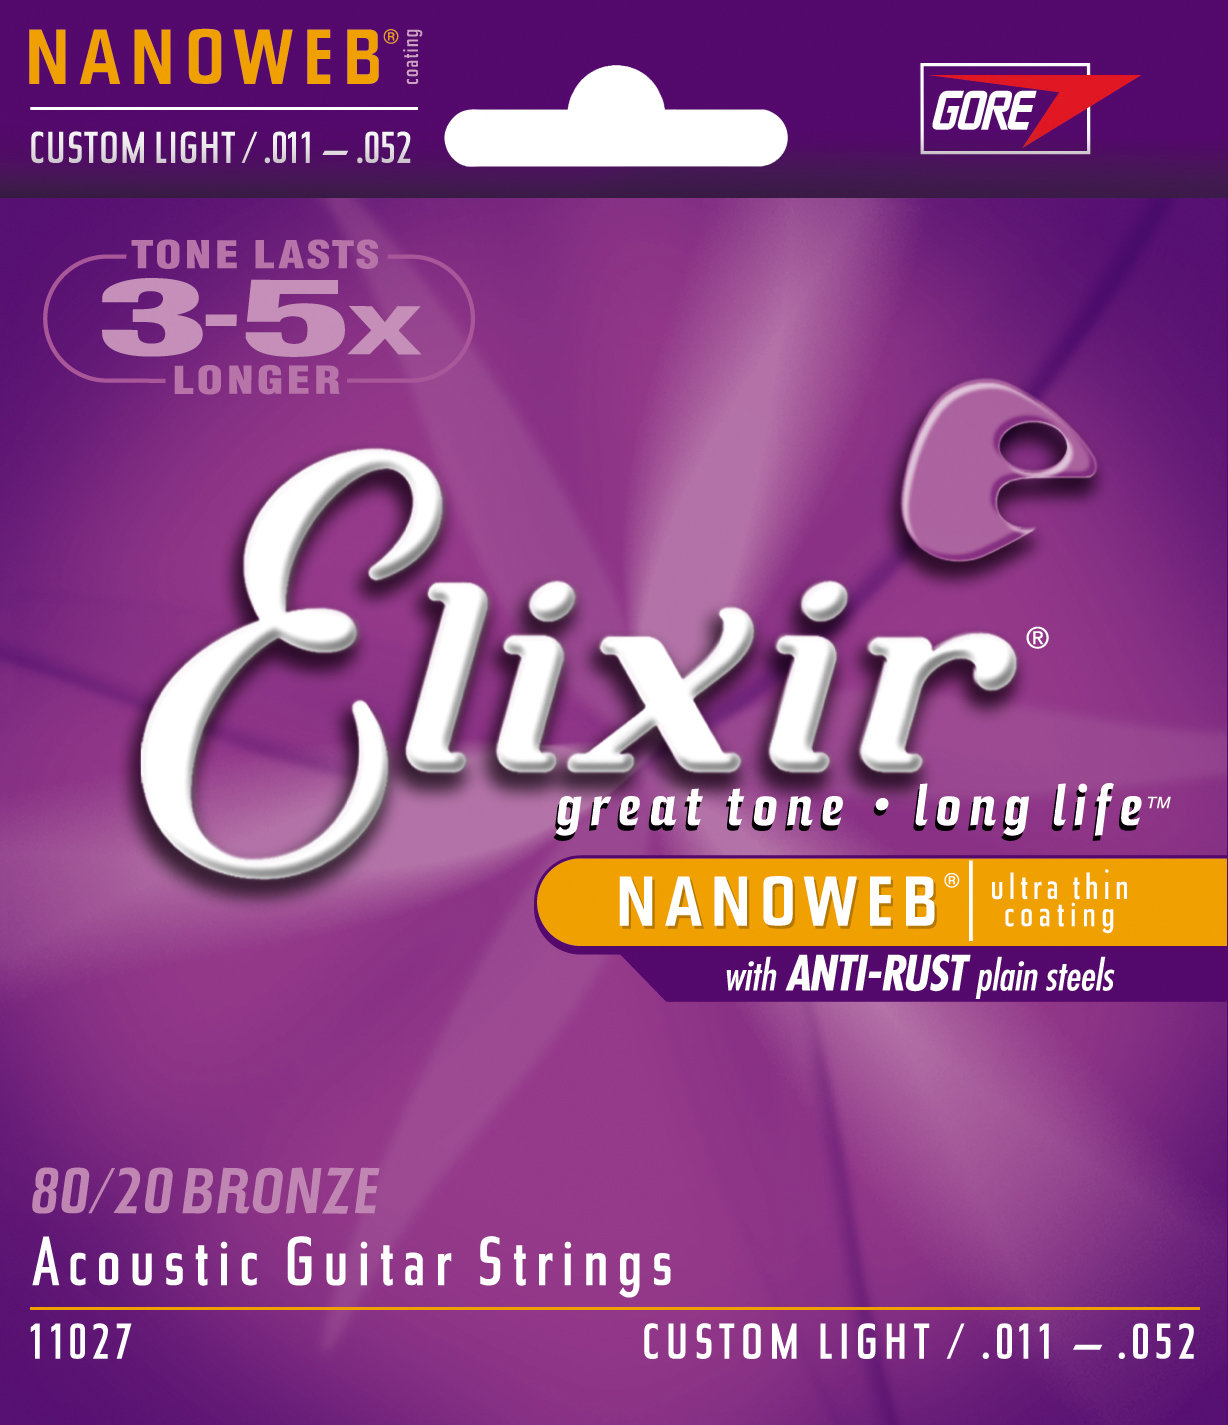 สายกีตาร์โปร่ง Elixir 80/20 Bronze Nanoweb Anti-Rust, Custom light, 11-52